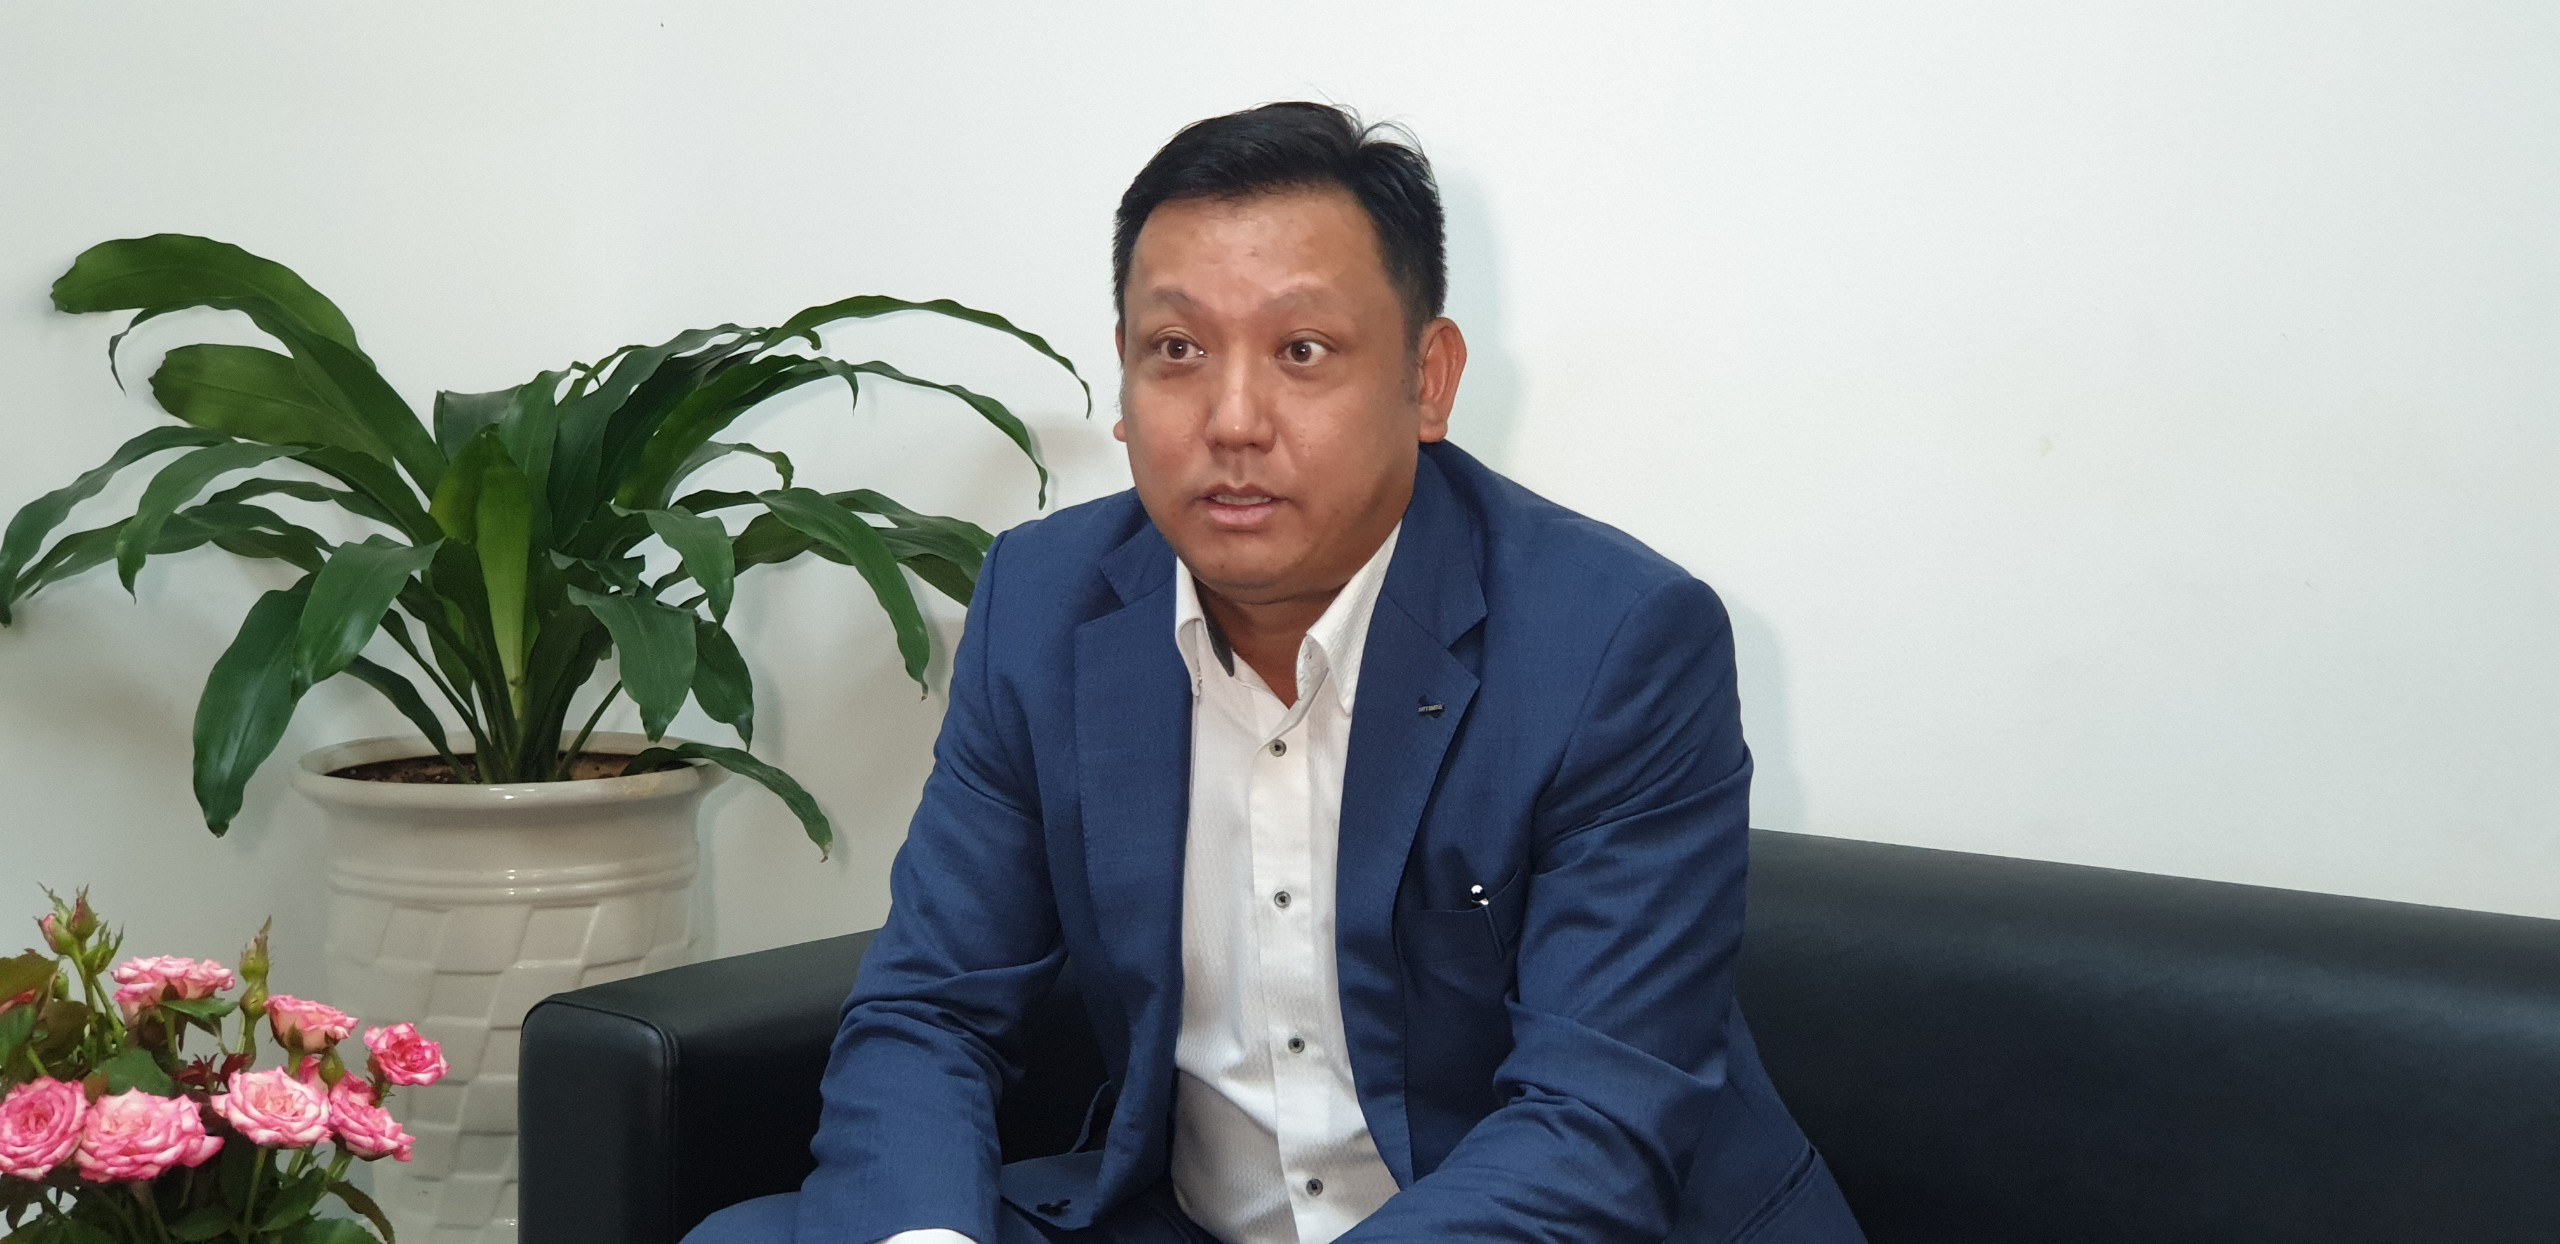 Predictable legal environment to help Vietnam attract FDI post Covid-19: NTT Data Vietnam CEO